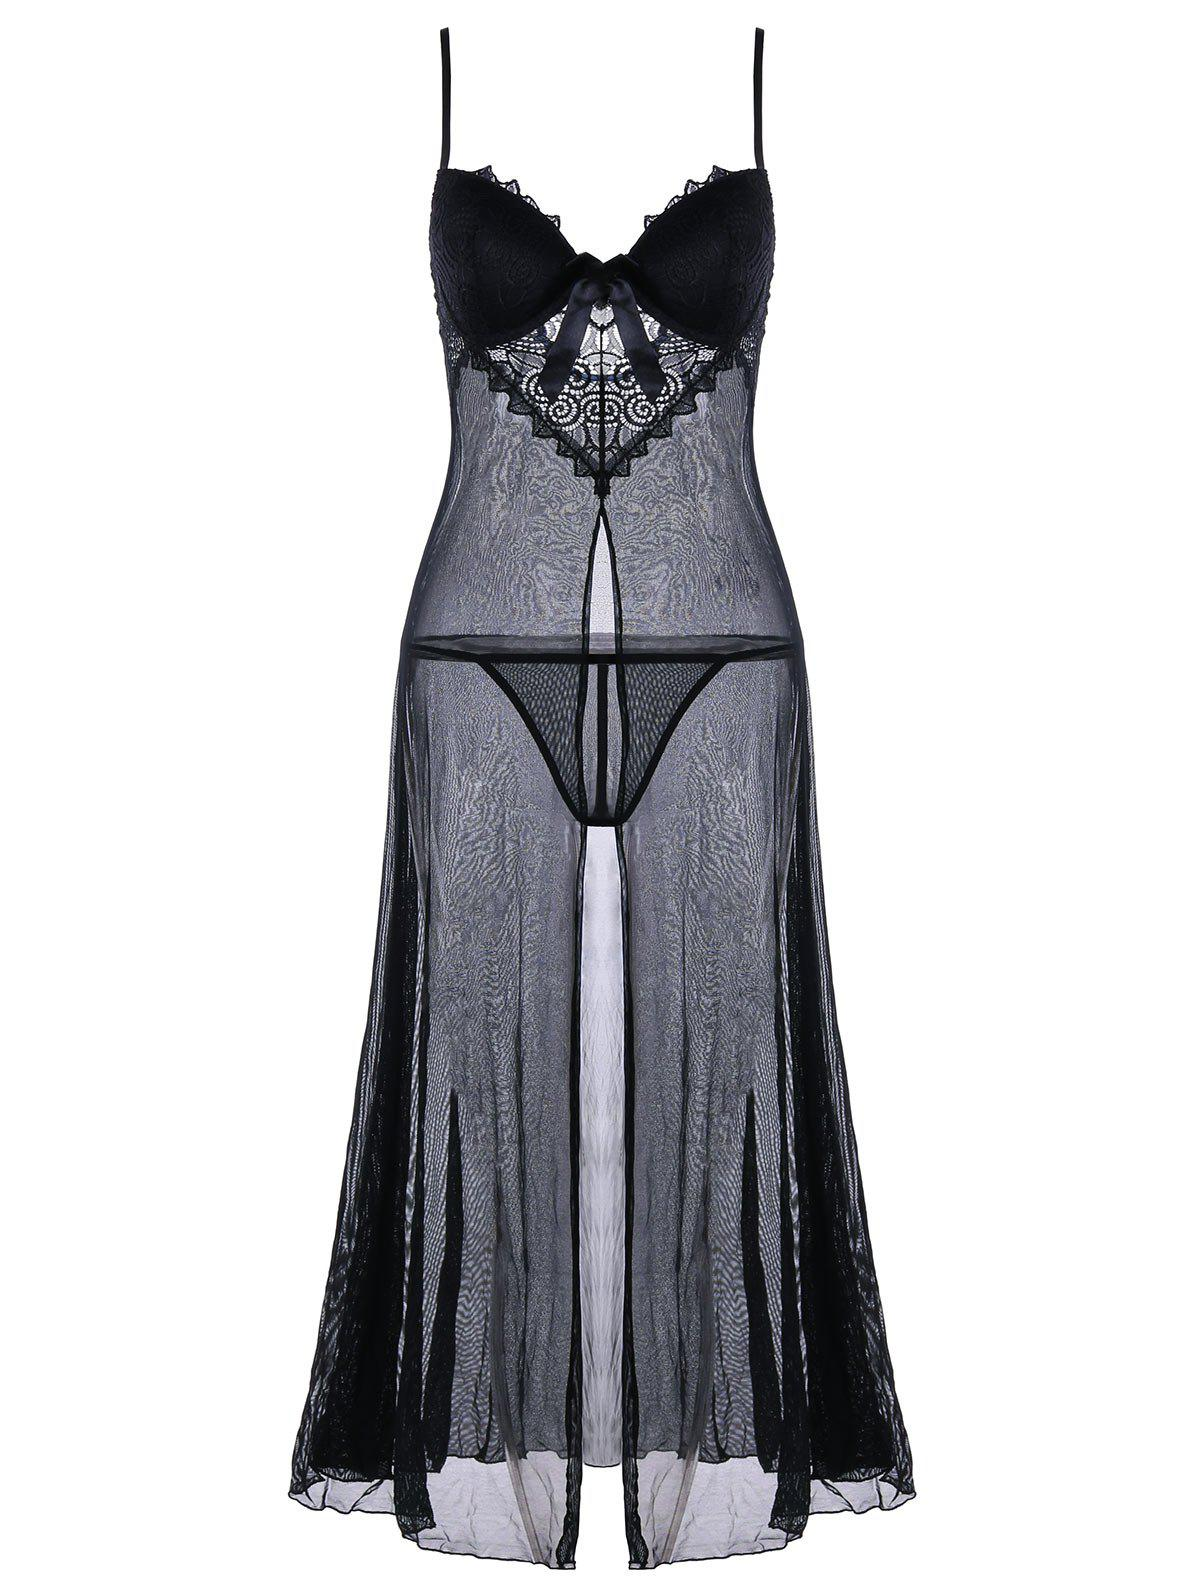 Sheer Front Slit Longline Babydoll Dress - BLACK ONE SIZE